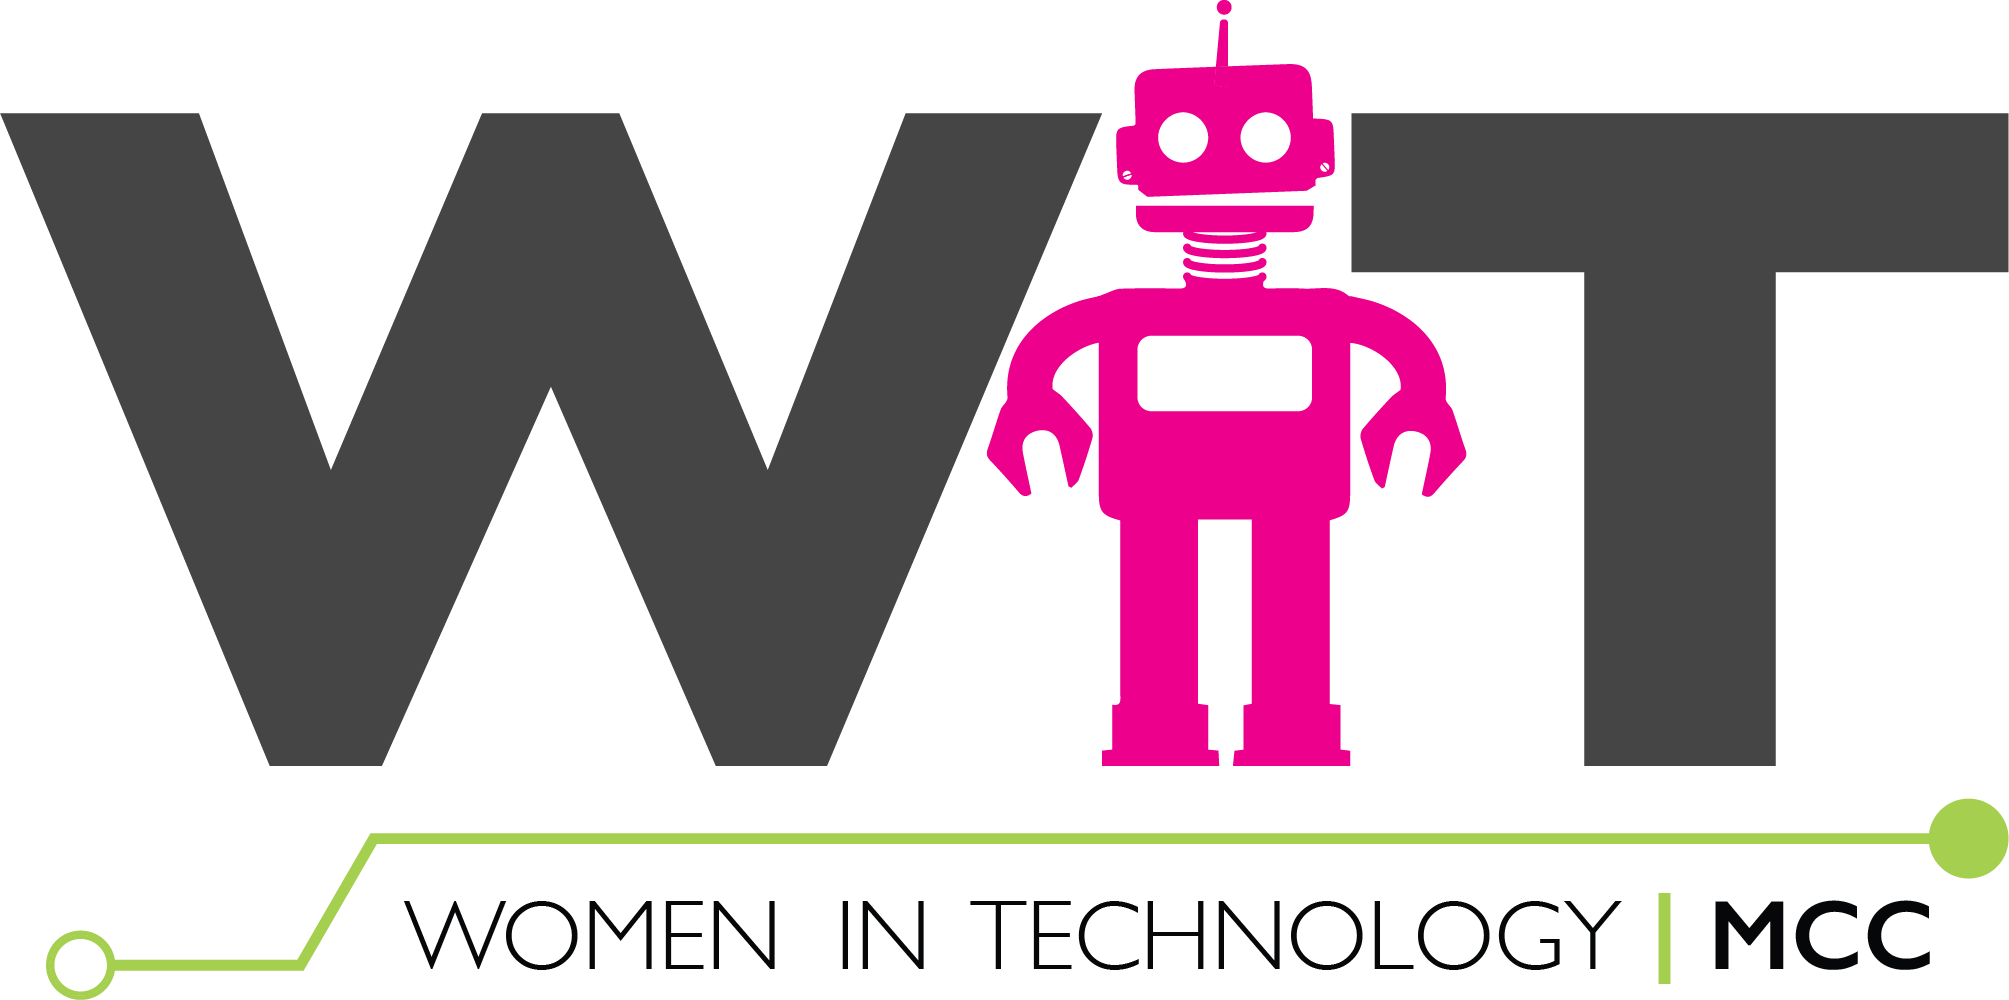 Women in Technology Day logo